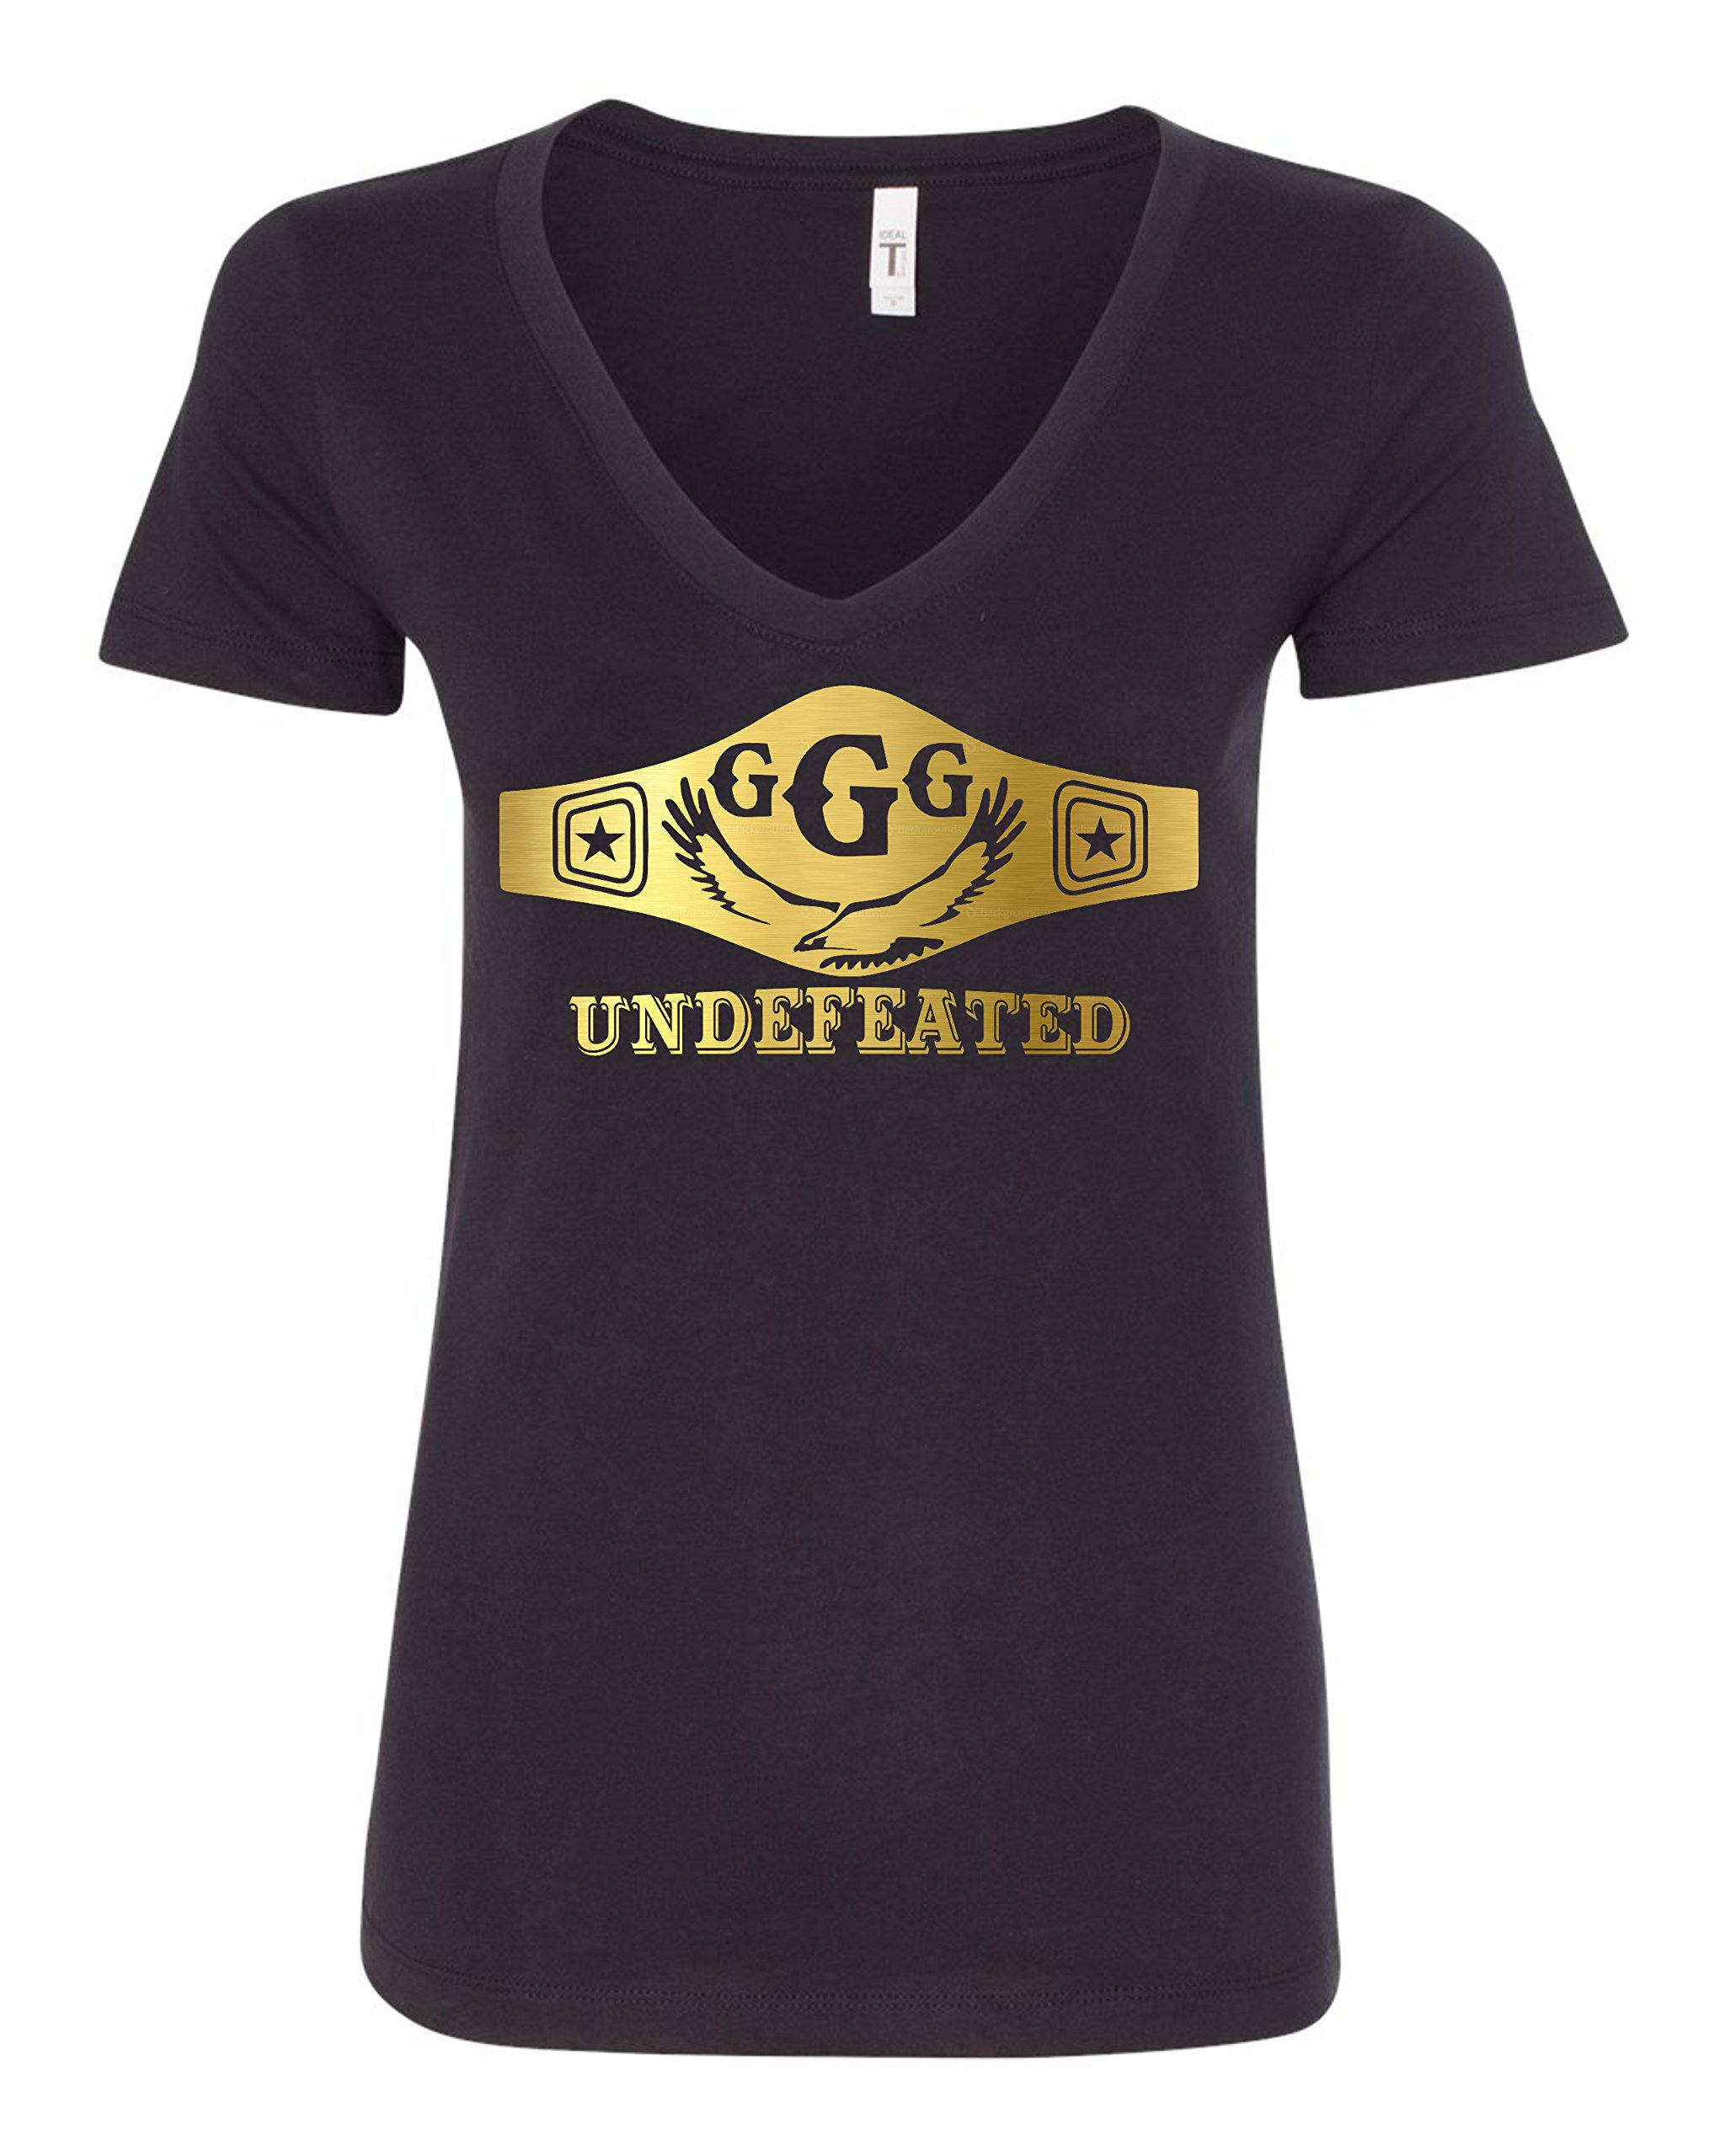 Ggg Undeted Boxing T Shirt 8226